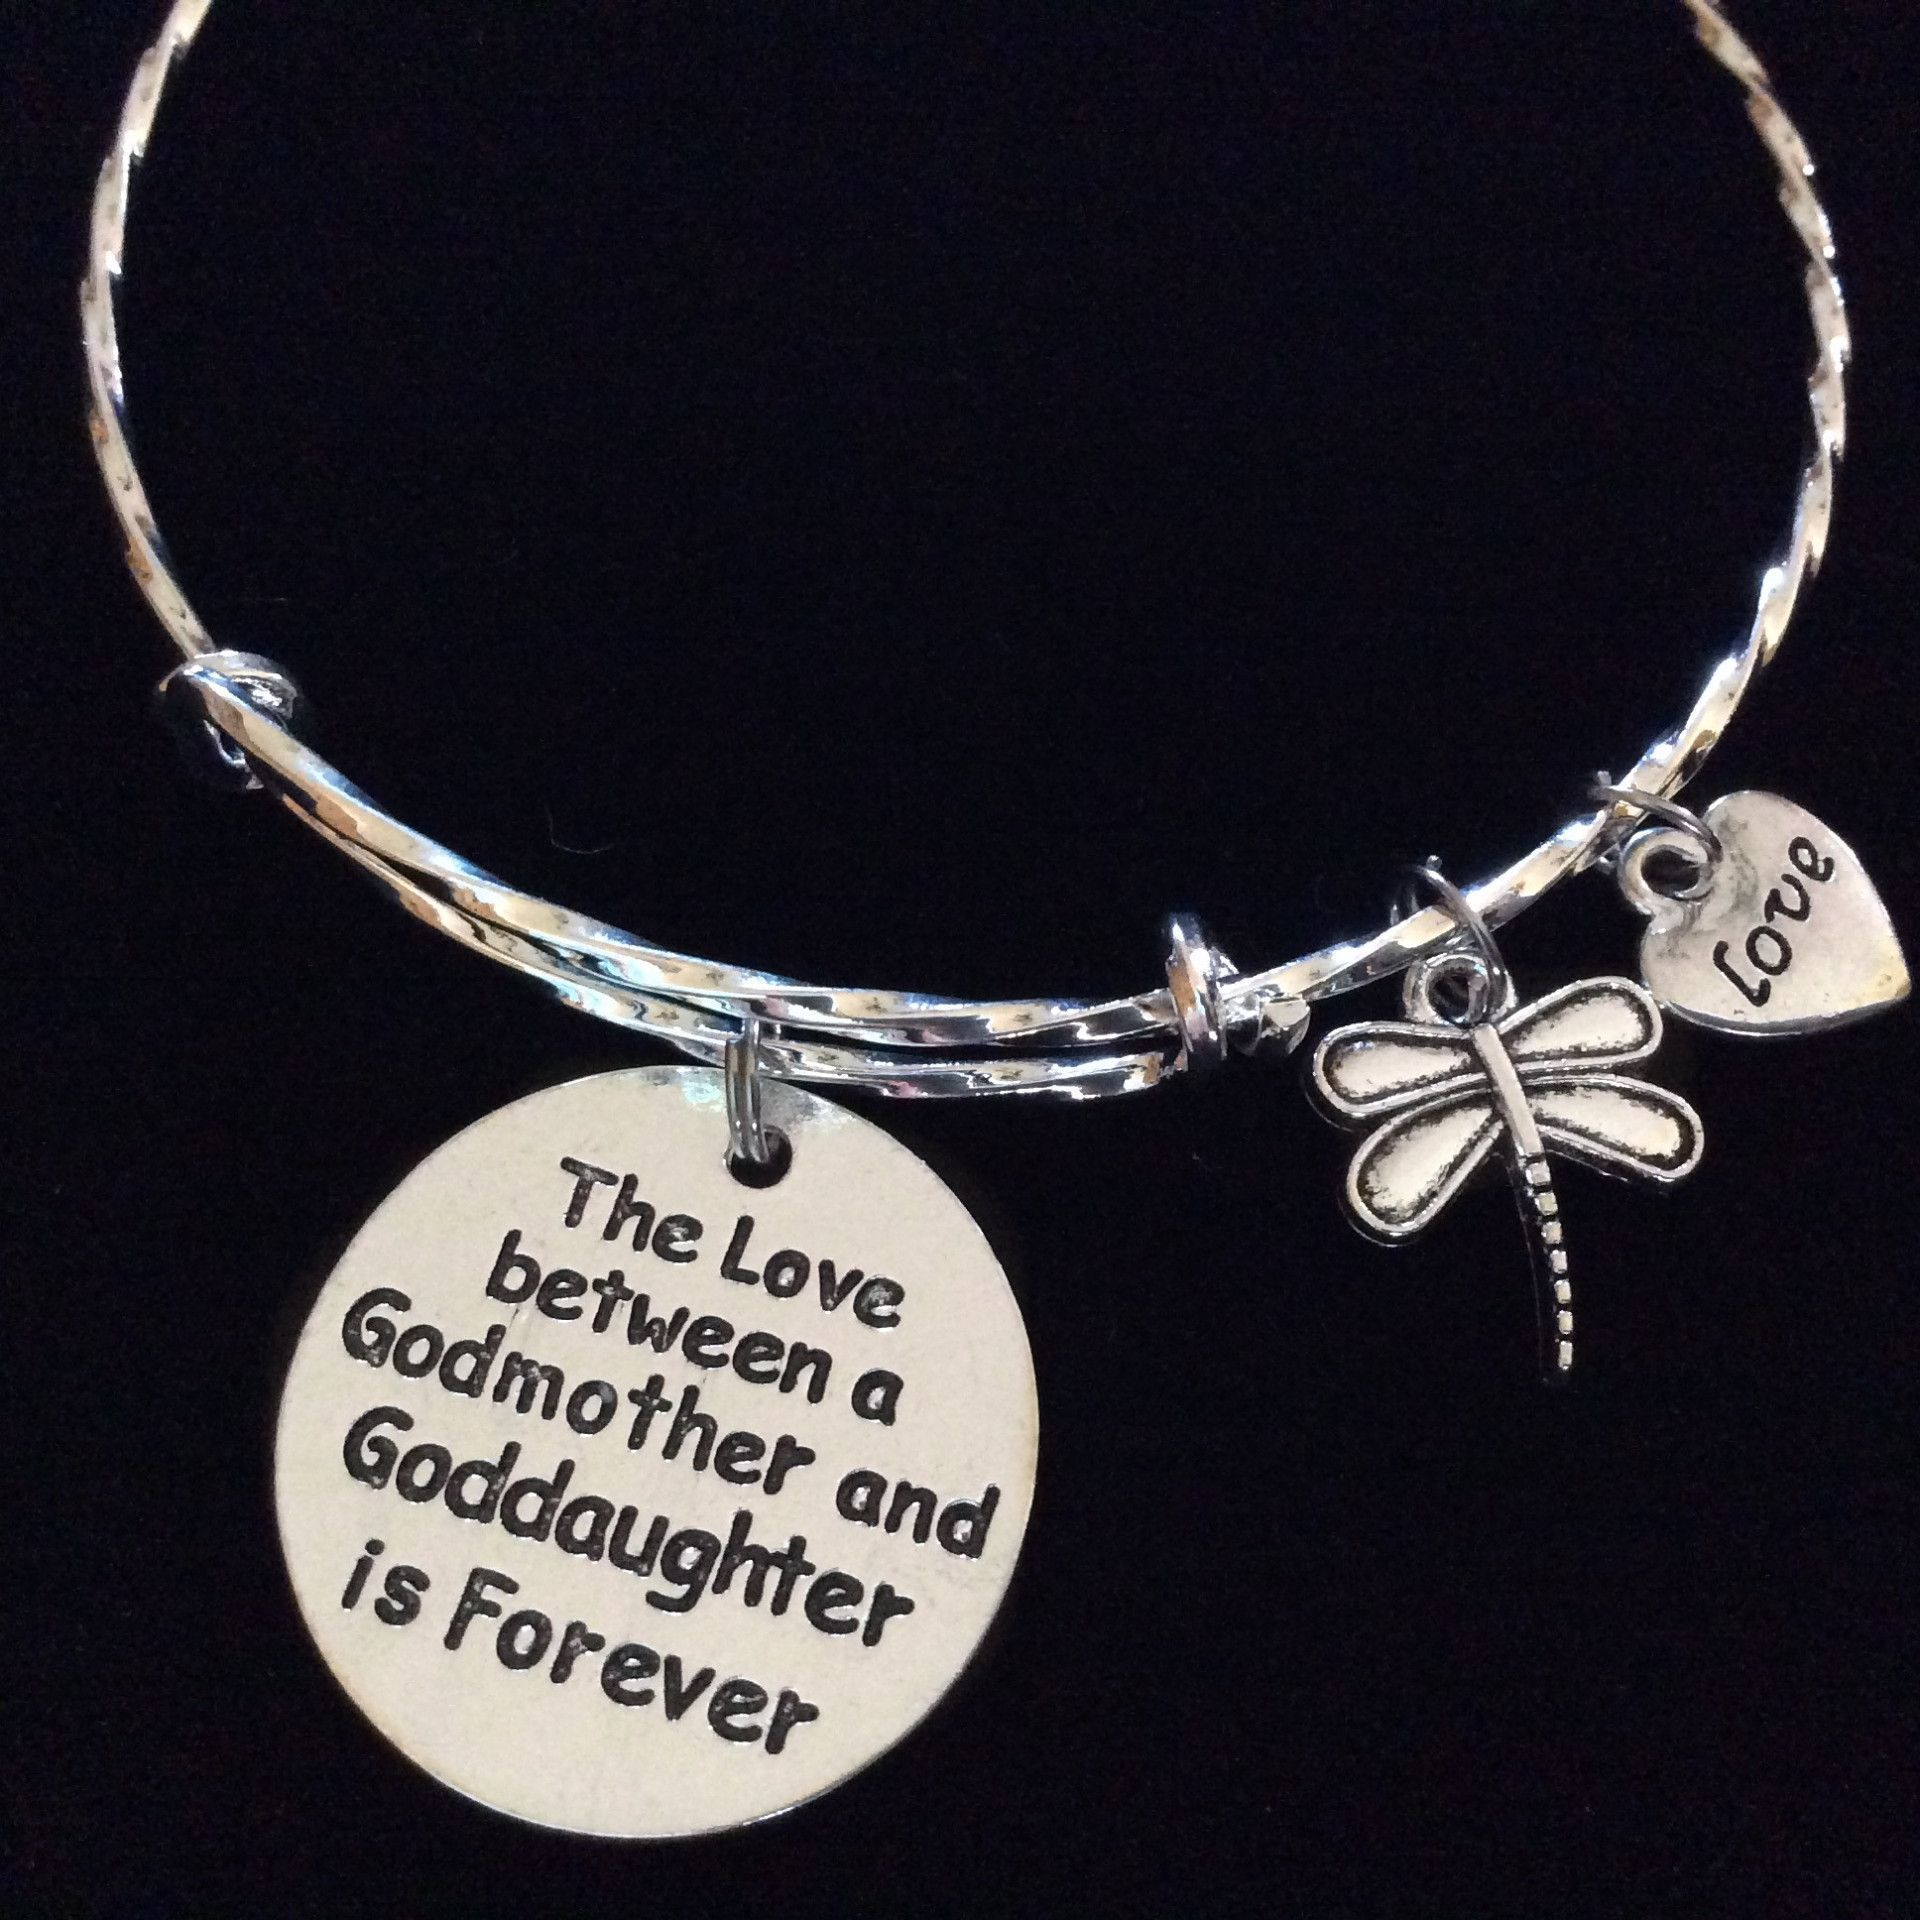 Godmother 40th Birthday Charm Bracelet with Gift Box Women's Jewellery fLgoynYhsX